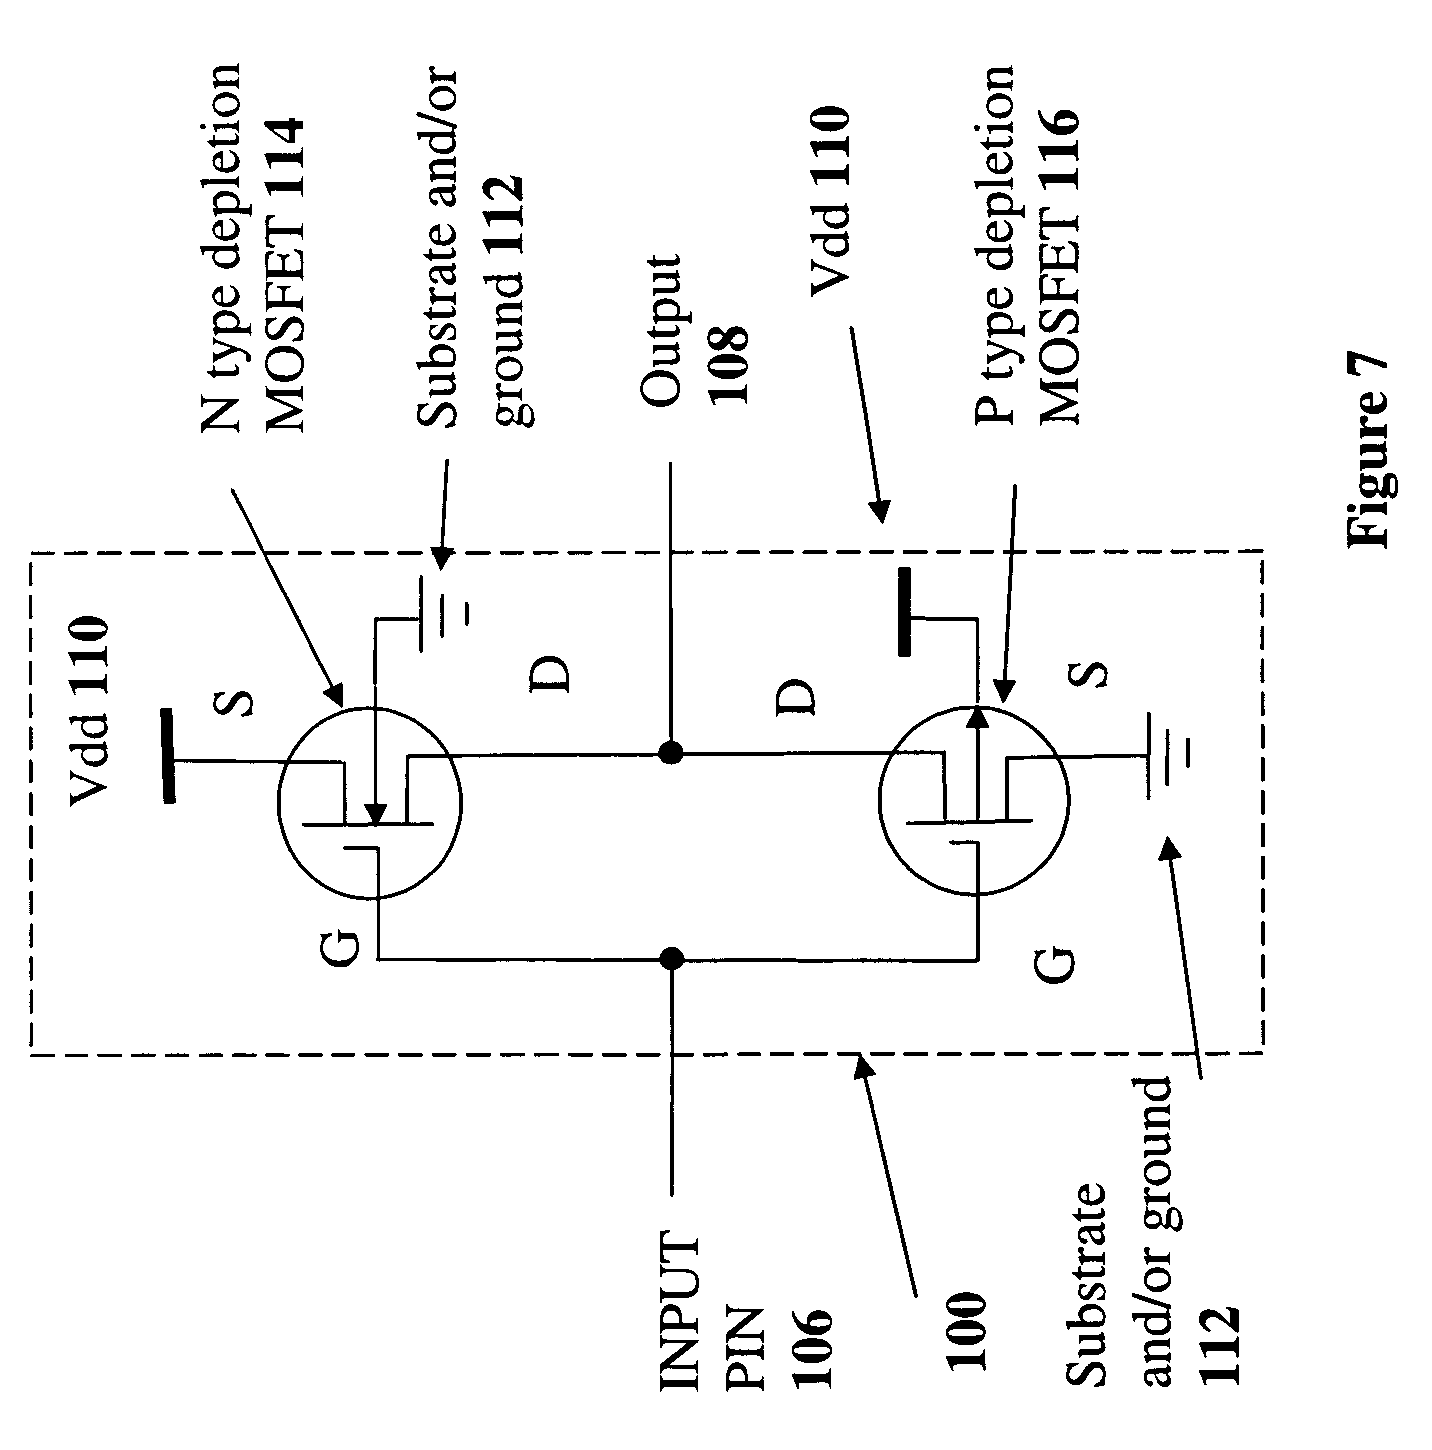 patent us7817459 - depletion-mode mosfet circuit and applications